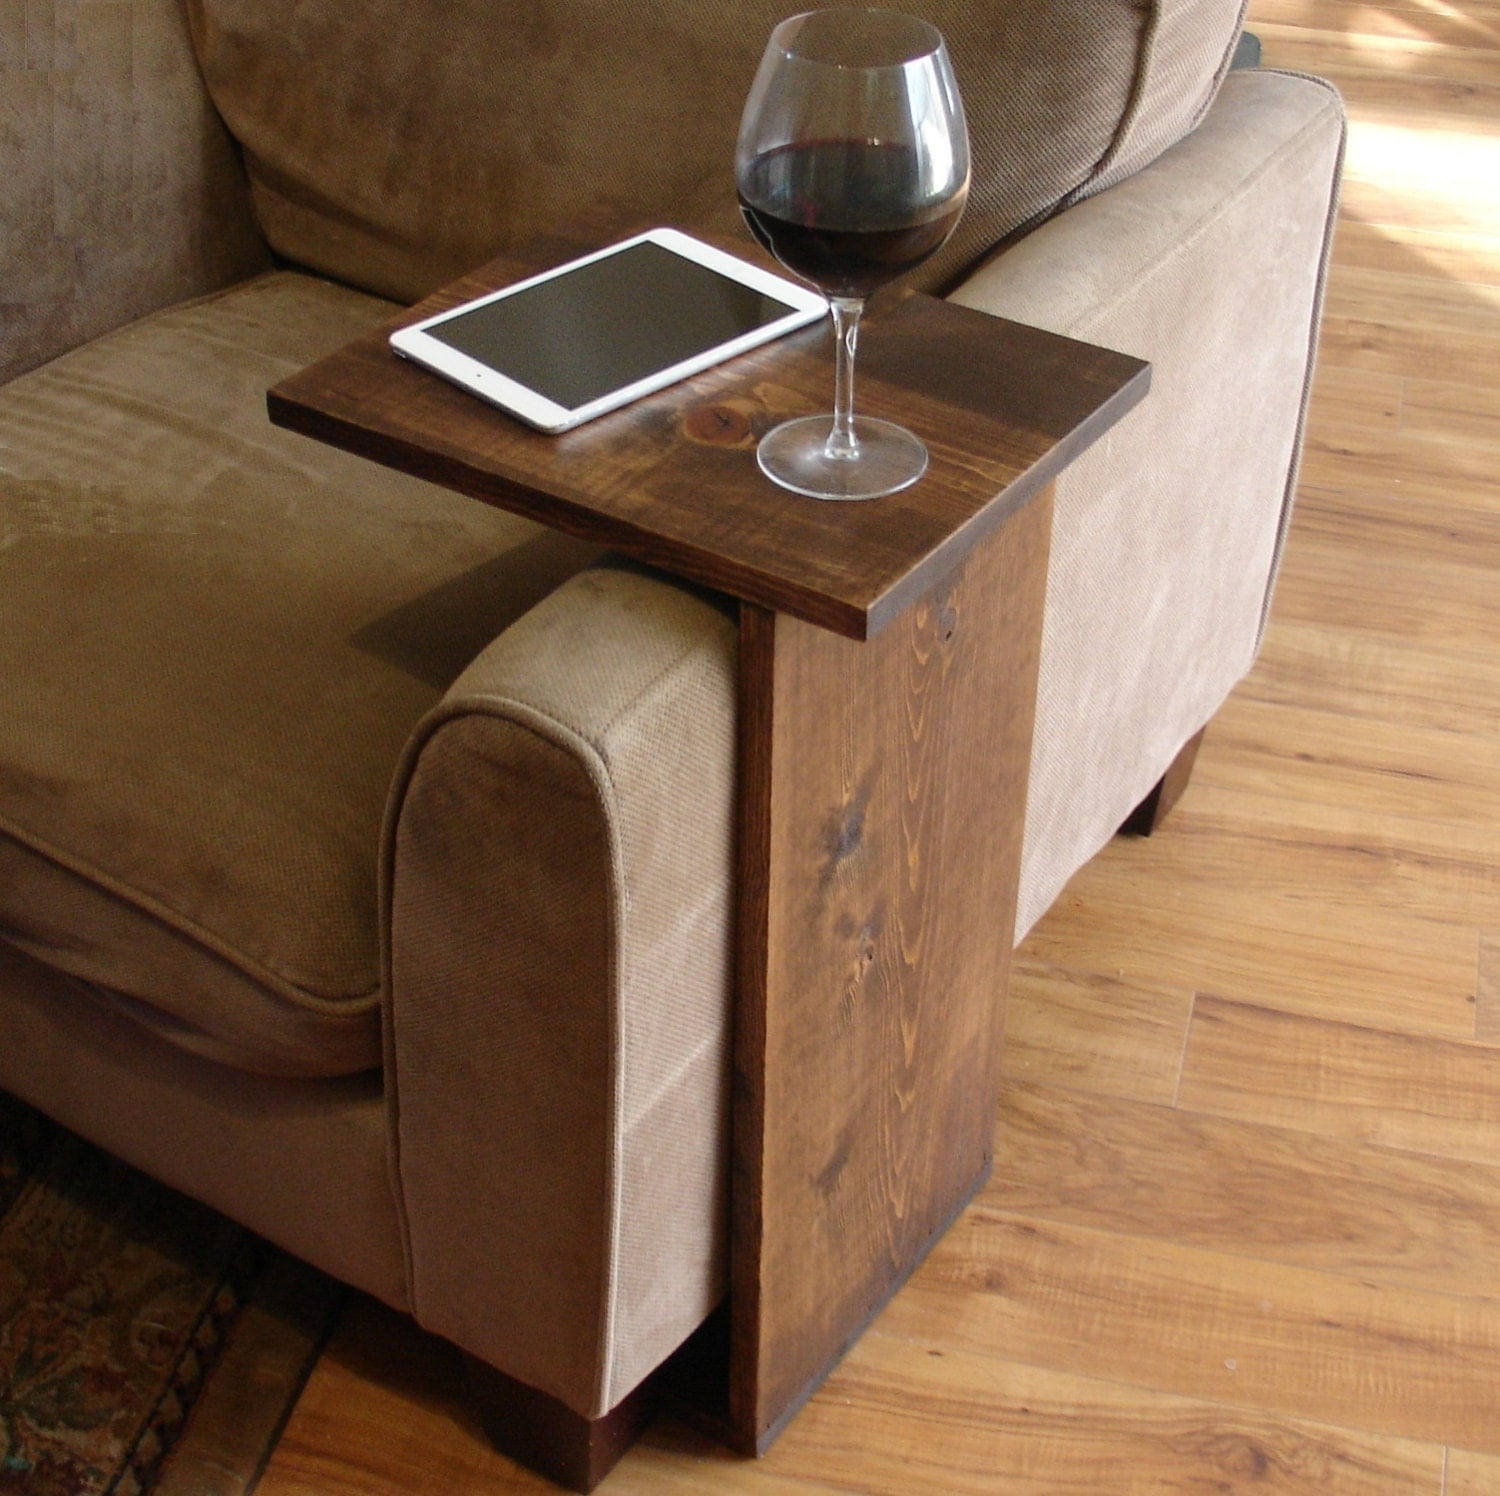 Sofa Table Chair Sofa Chair Arm Rest Tray Table Stand